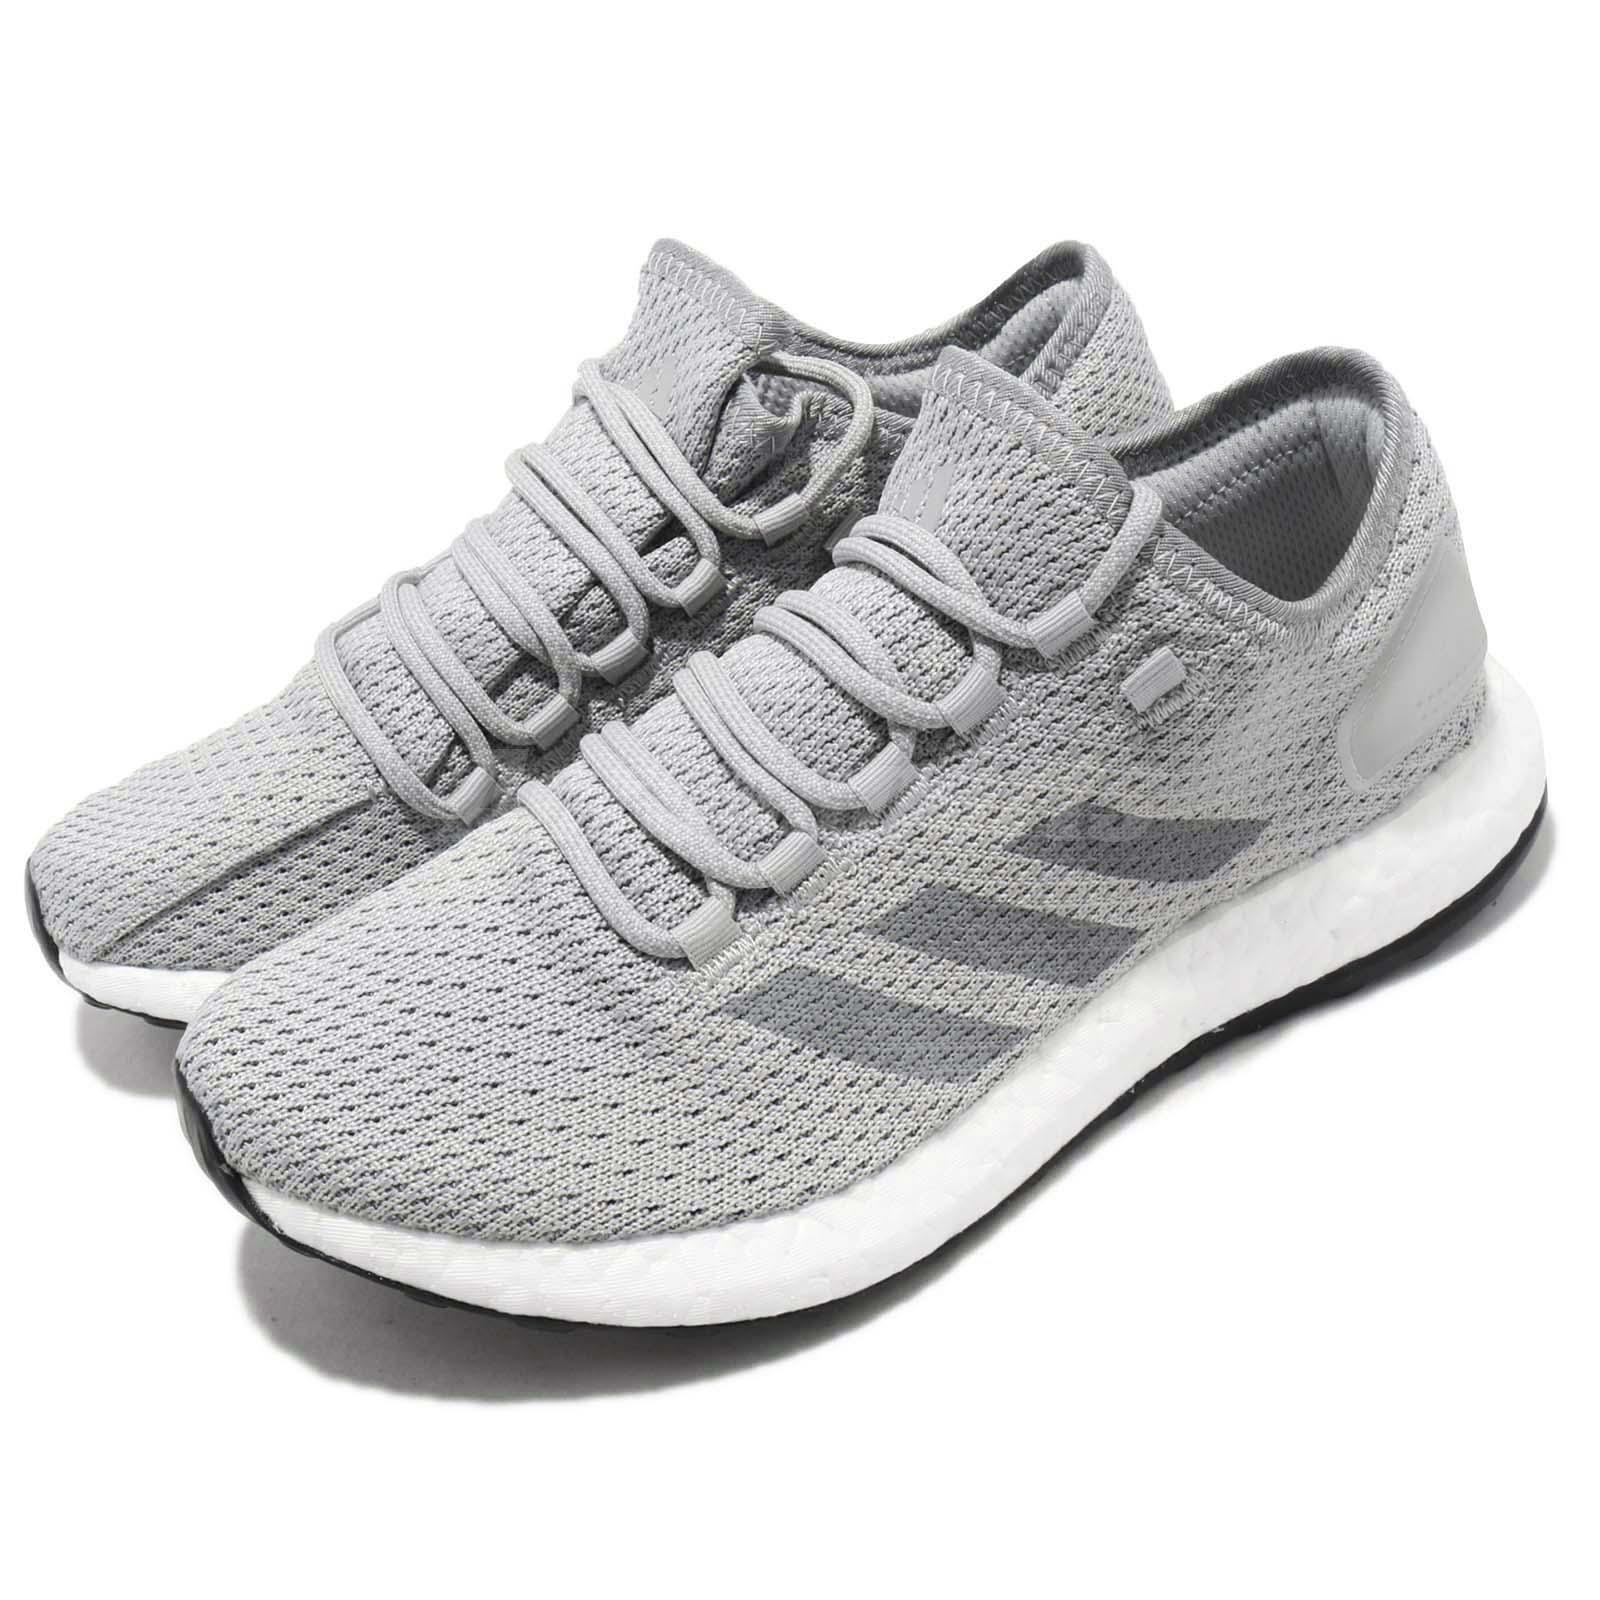 787cc60e6 Details about adidas PureBOOST Clima Grey White Men Running Casual Shoes  Sneakers BY8898